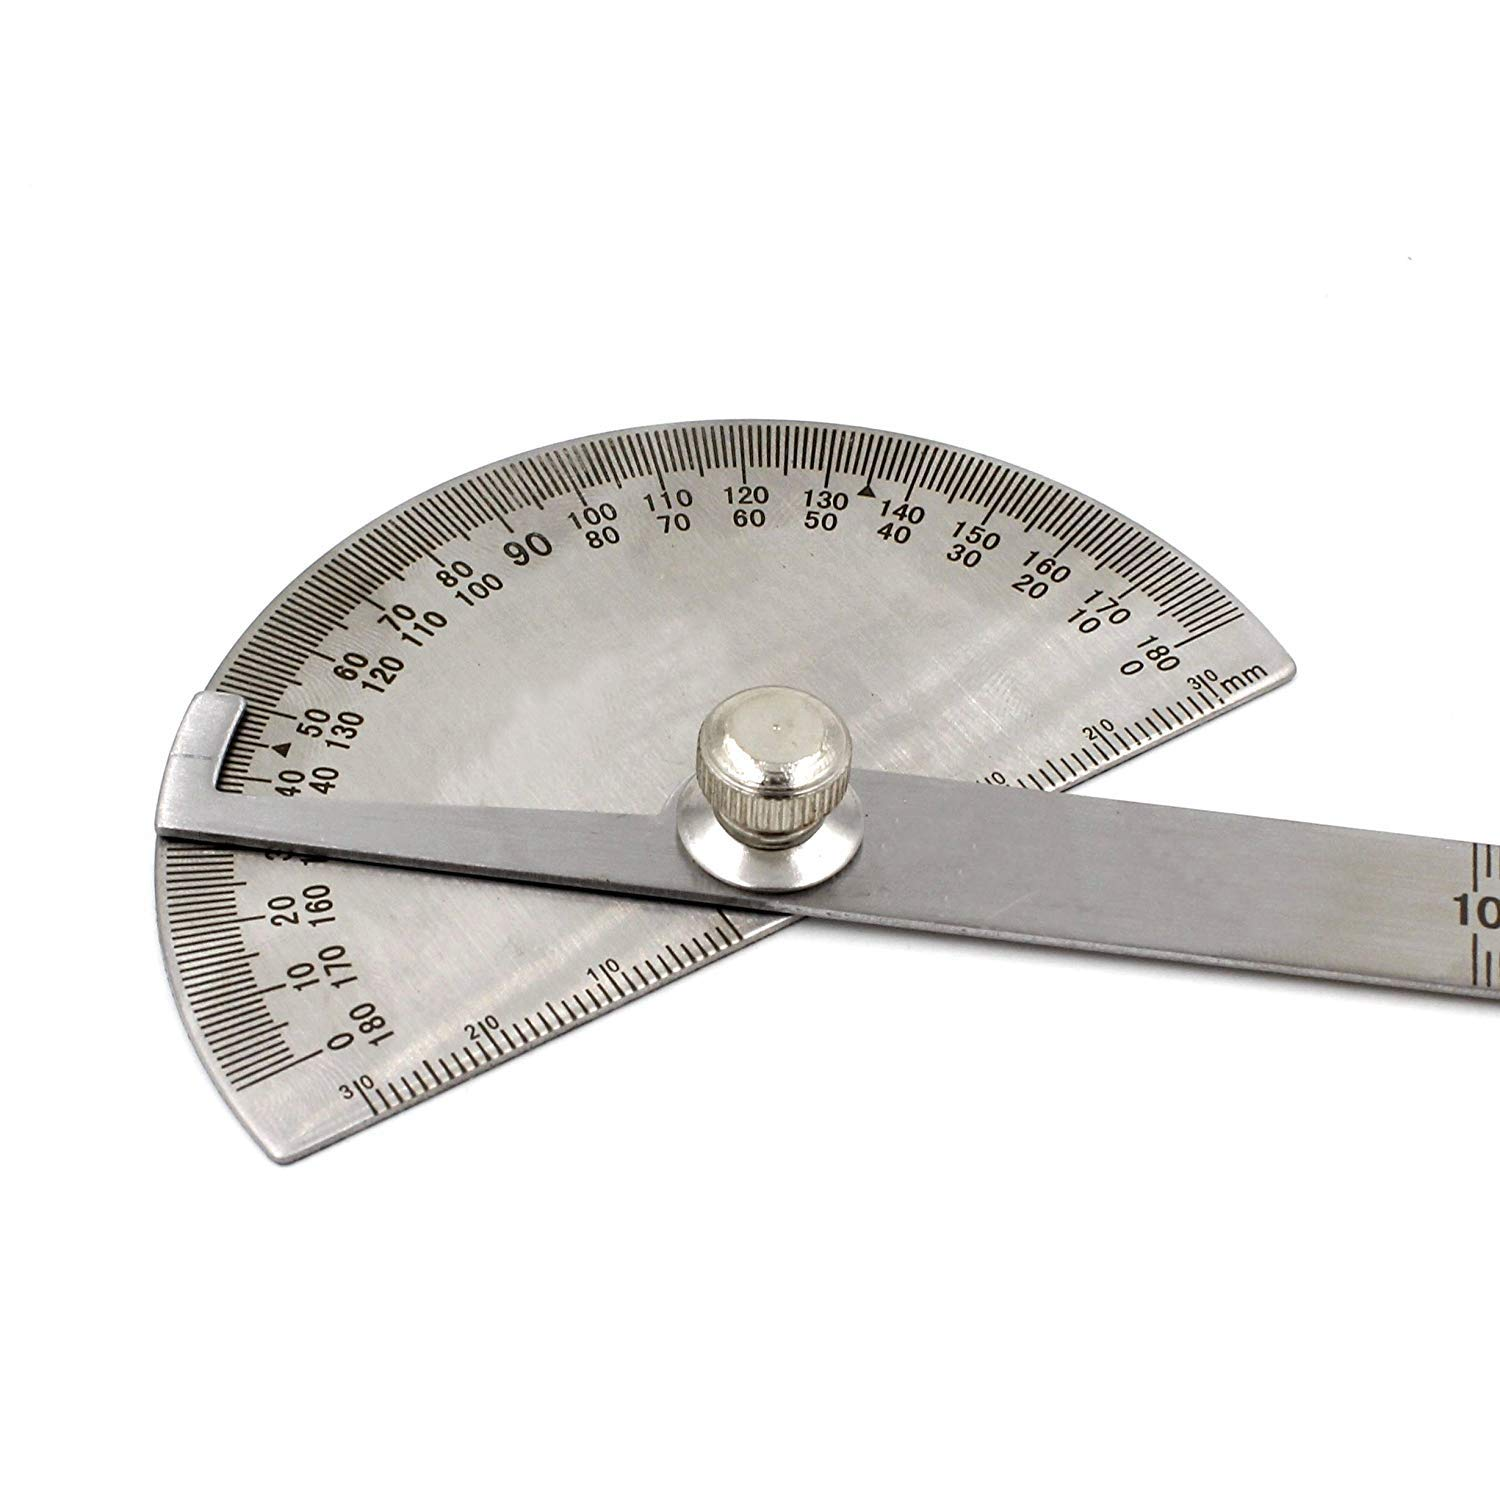 Afiken Economic Stainless Steel Round Head Rotary Protractor Angle Ruler Measuring Tool